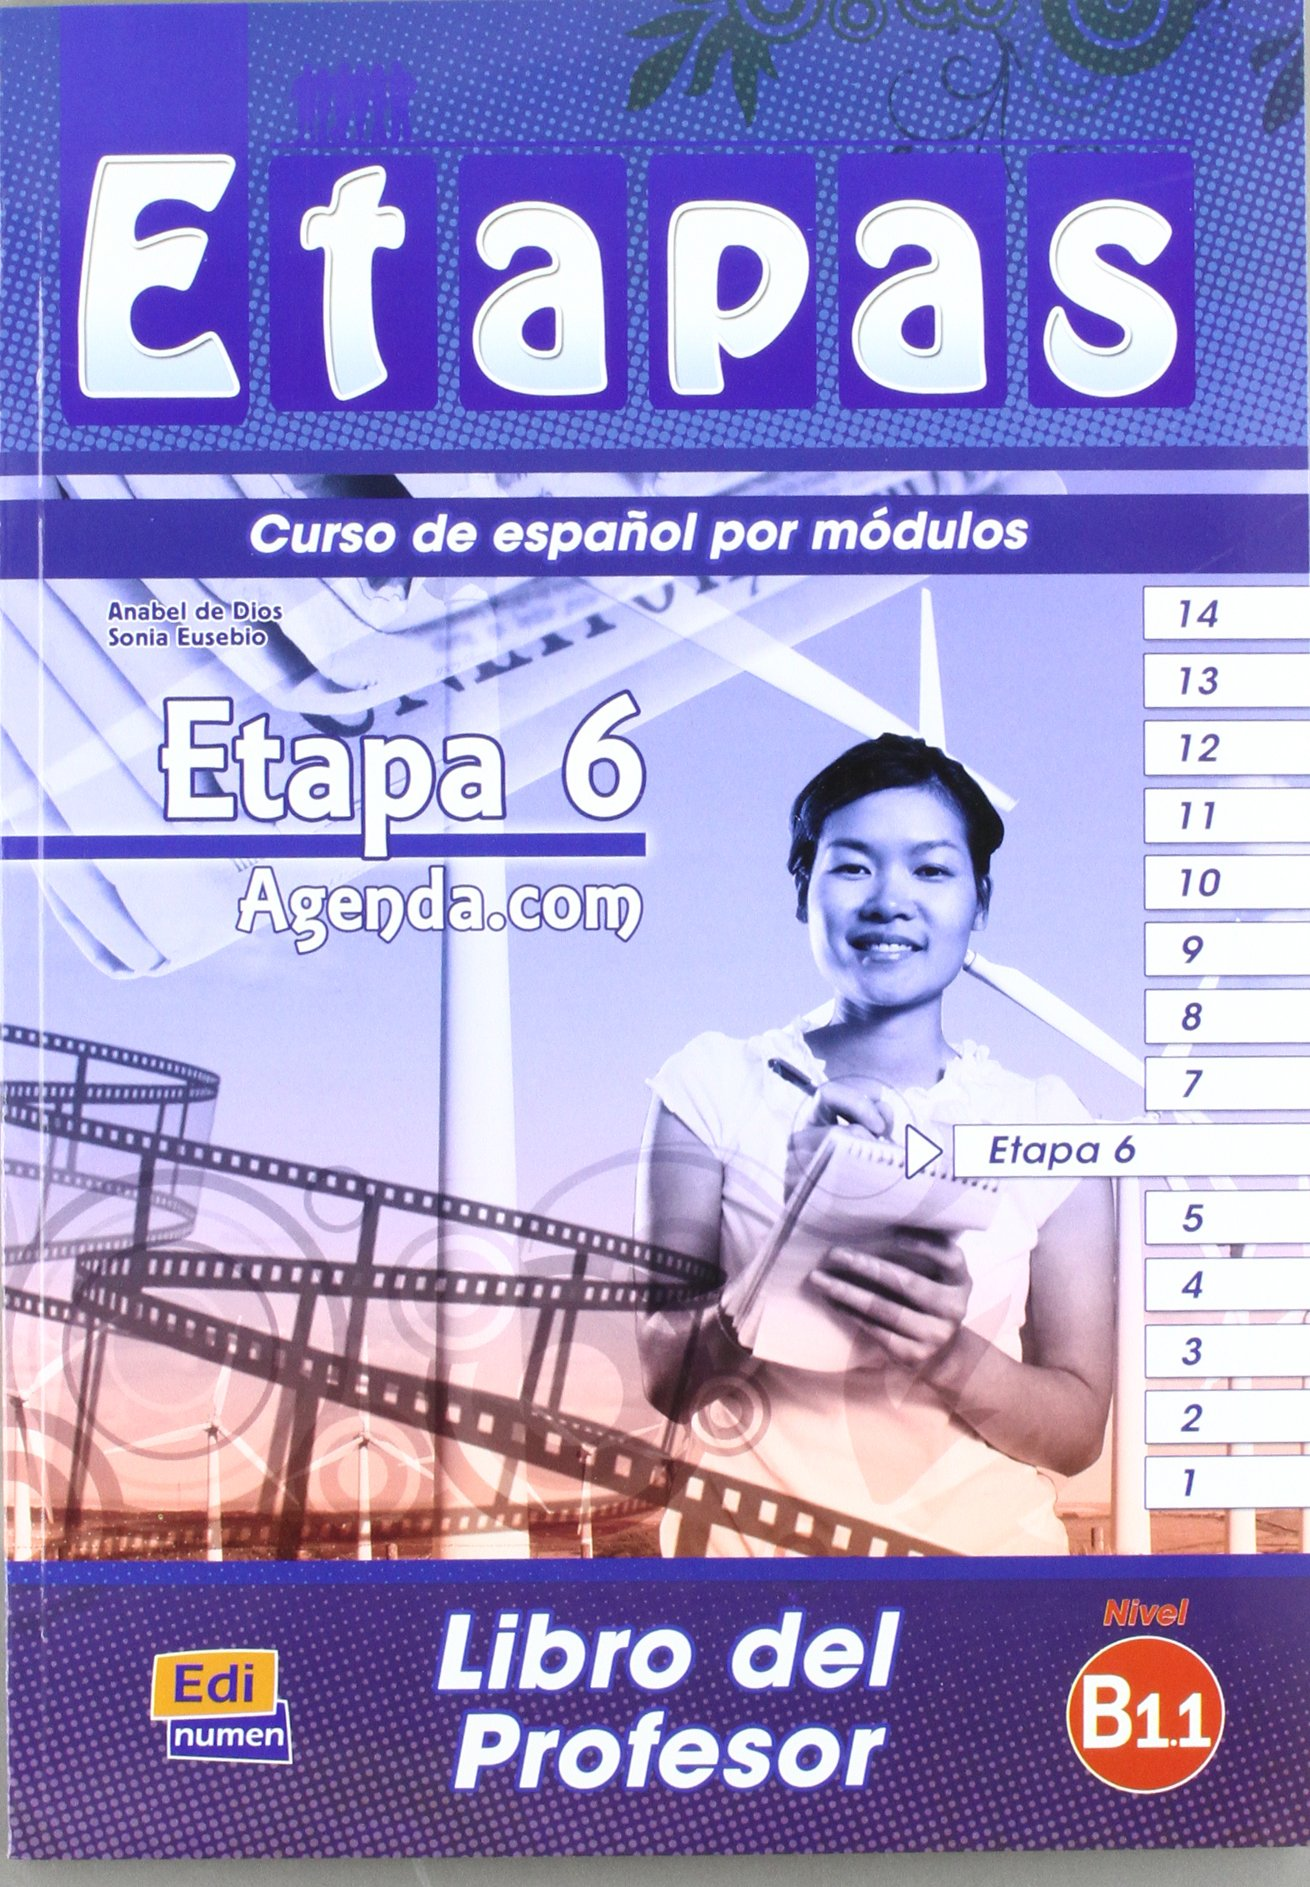 Etapas Level 6 Agenda.com - Libro del Profesor + CD (Spanish ...